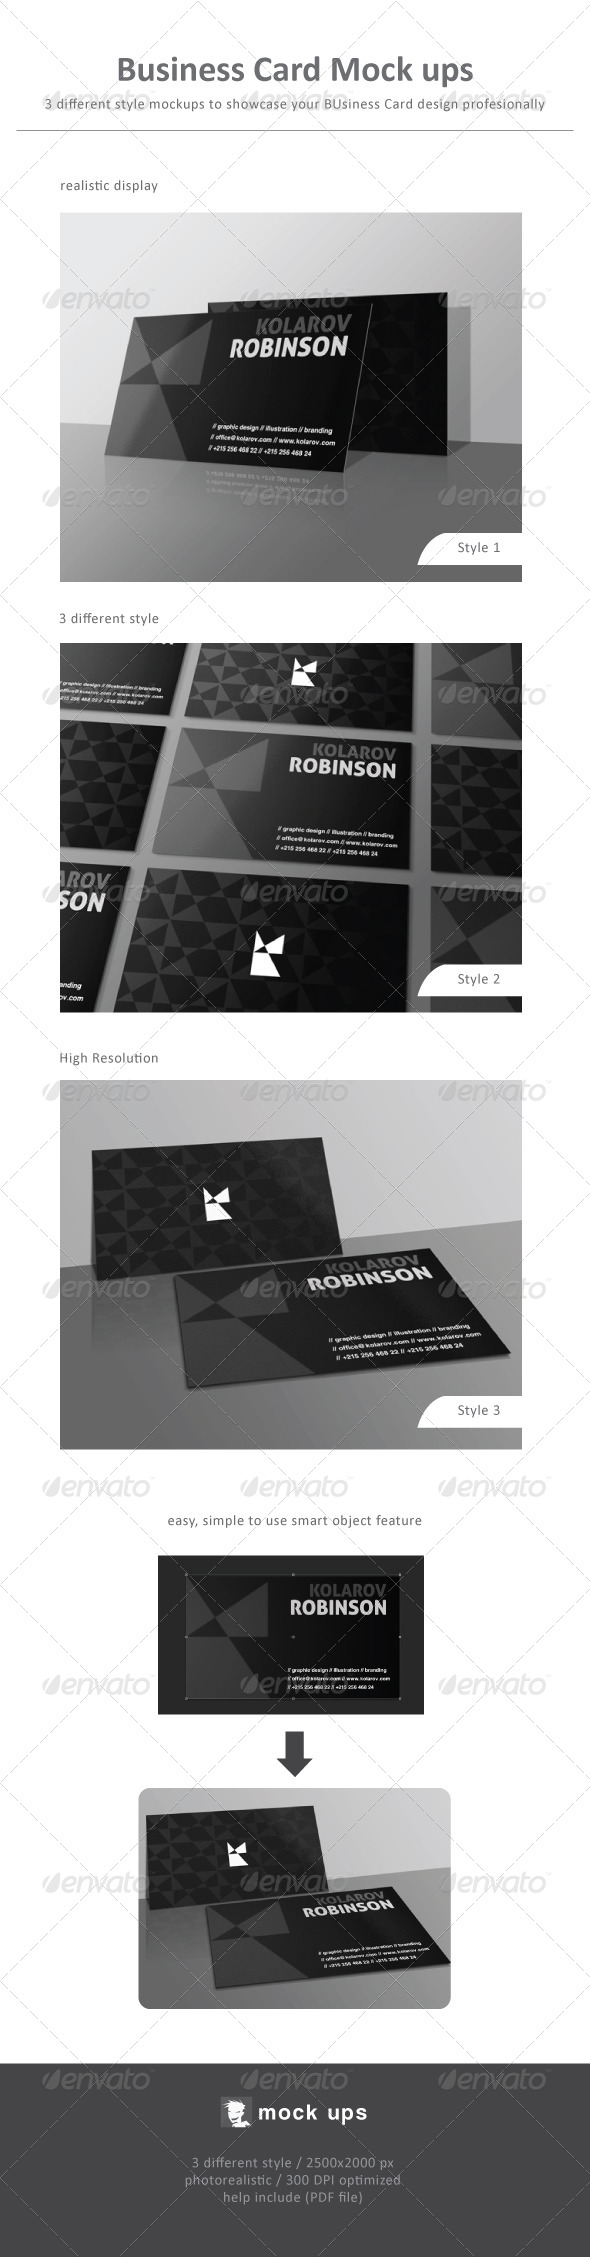 Business Card Mock Ups - Business Cards Print